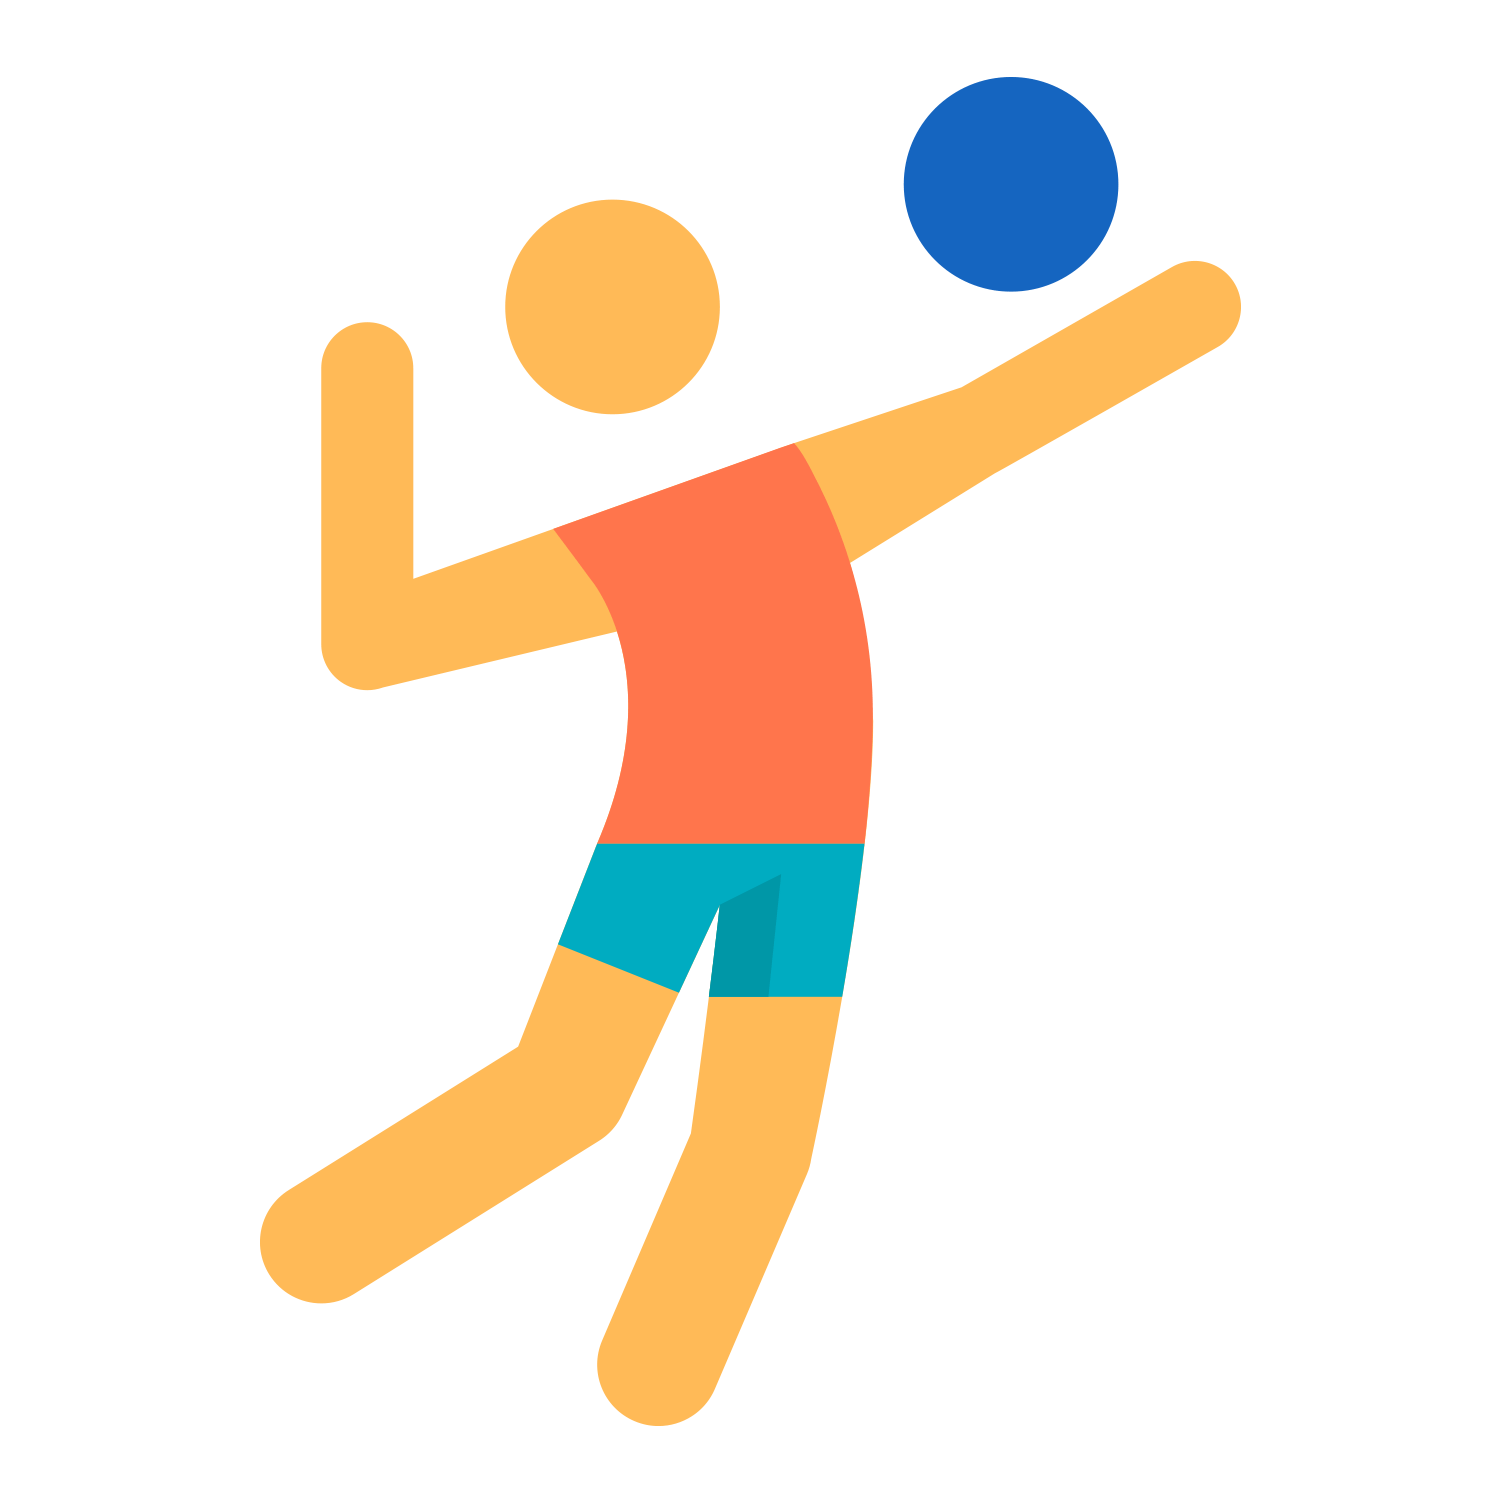 Beach sport icon transprent. Clipart volleyball sand volleyball